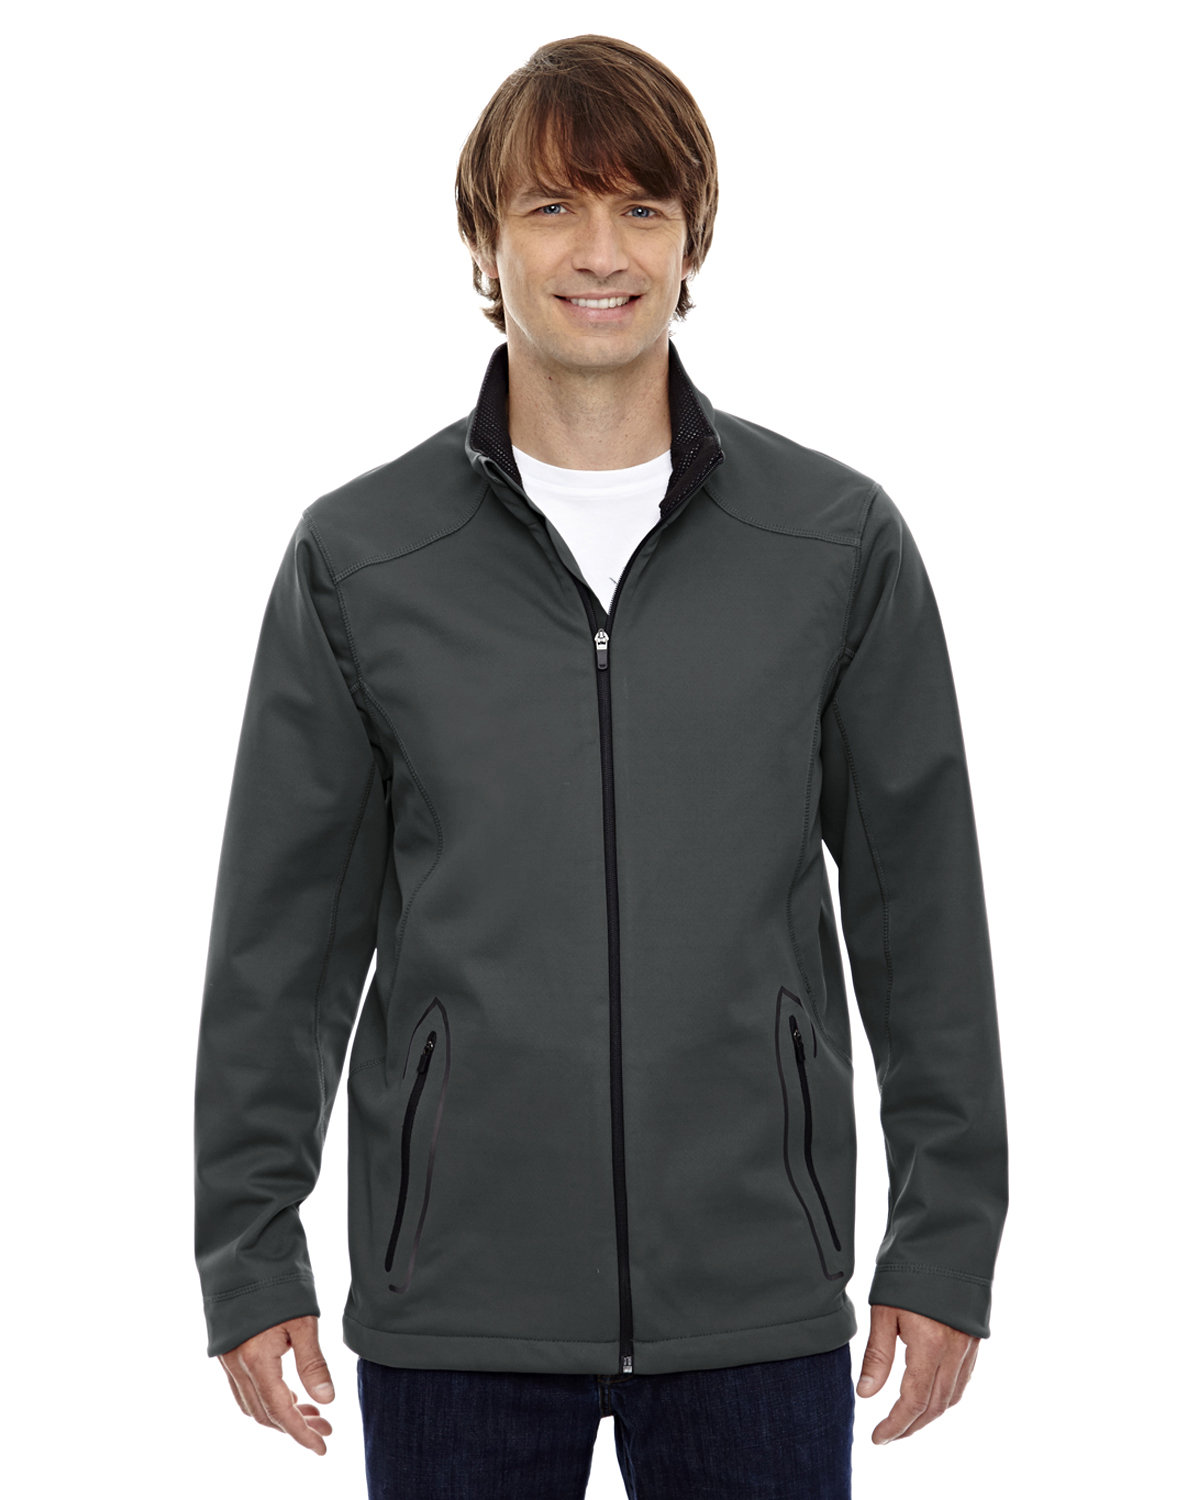 North End Men's Splice Three-Layer Light Bonded Soft Shell Jacket with Laser Welding GRAPHITE